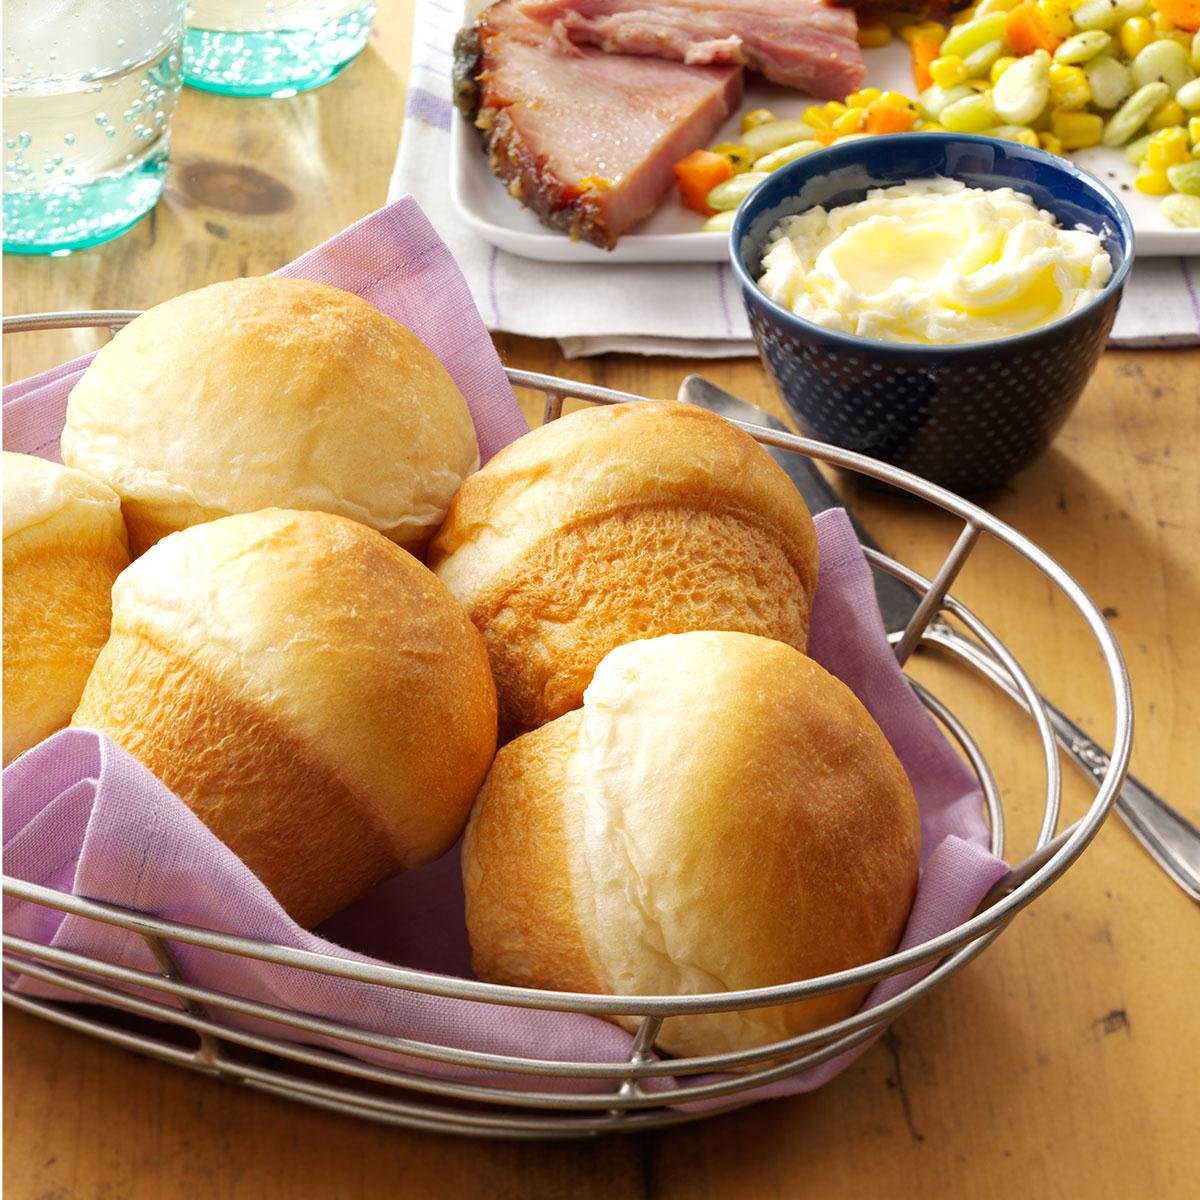 How to prepare rolls at home